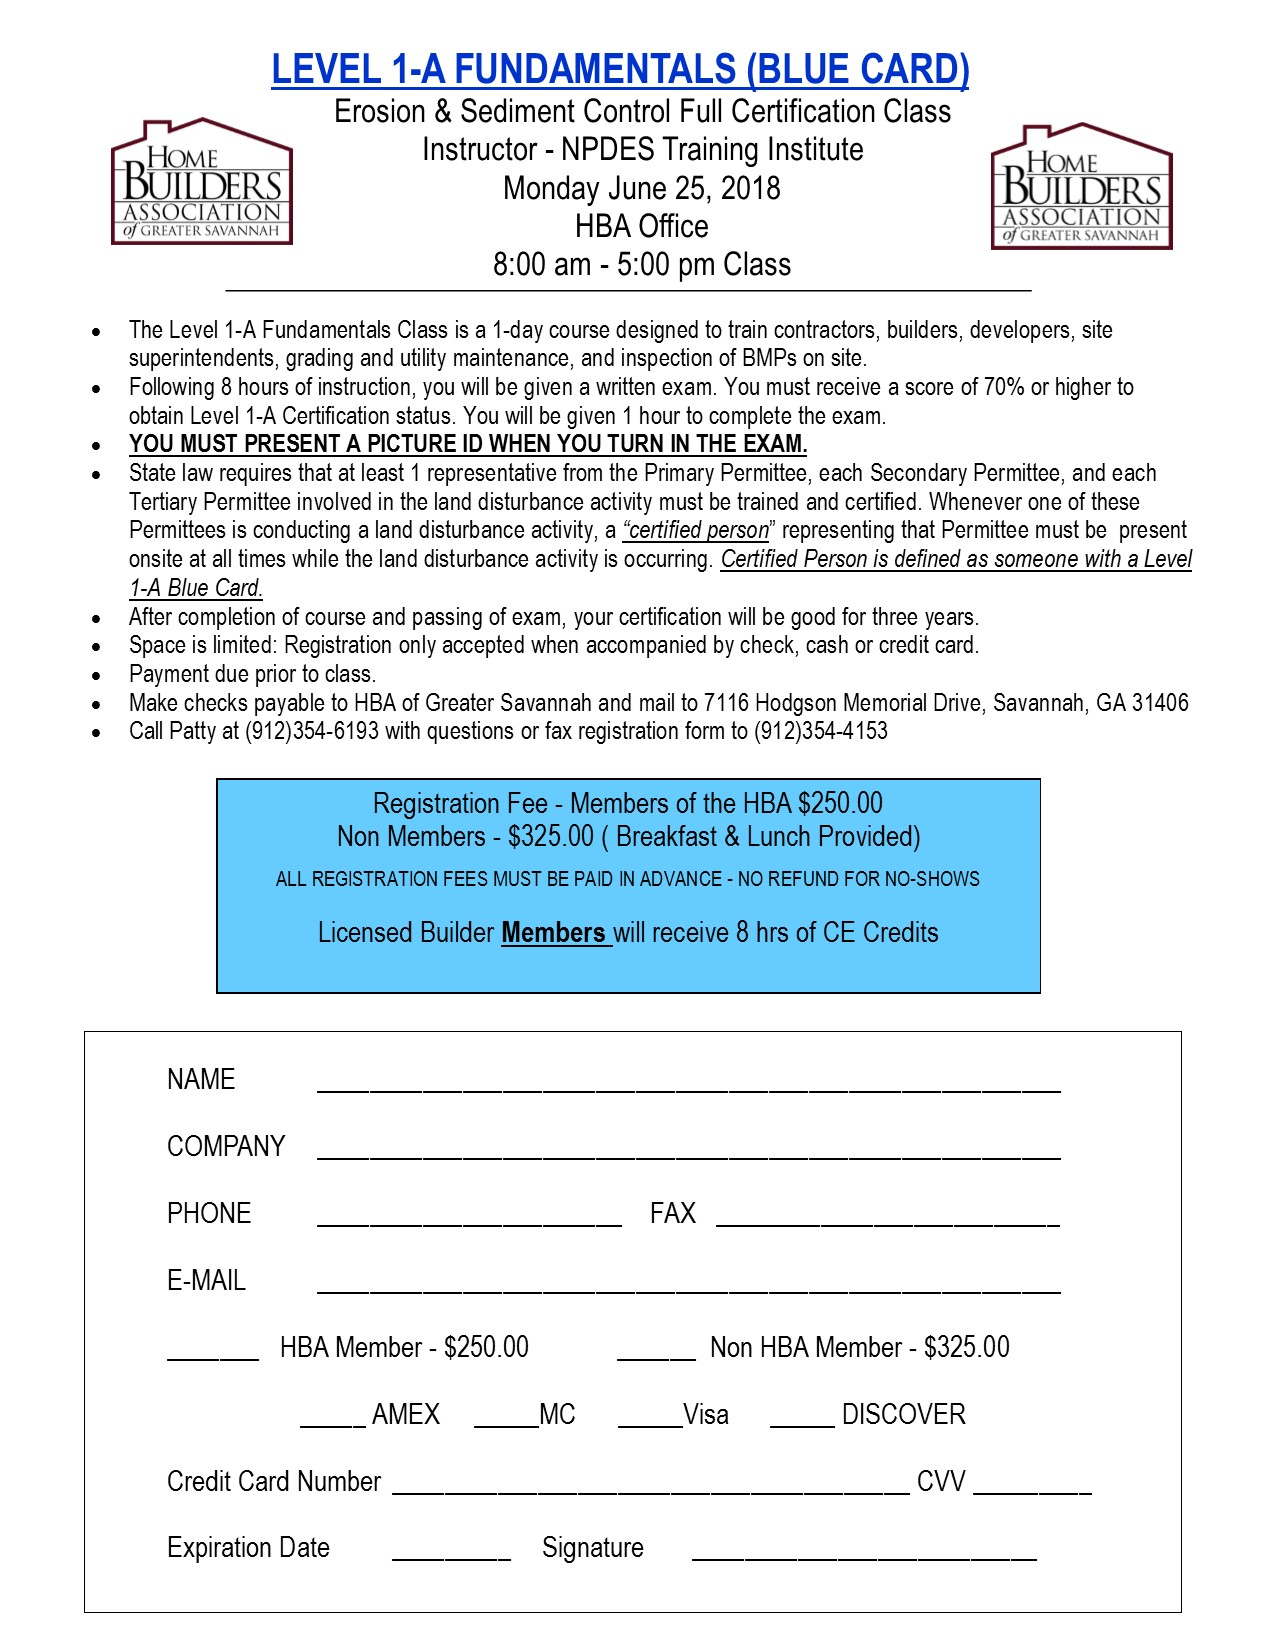 Events Home Builders Association Of Greater Savannah